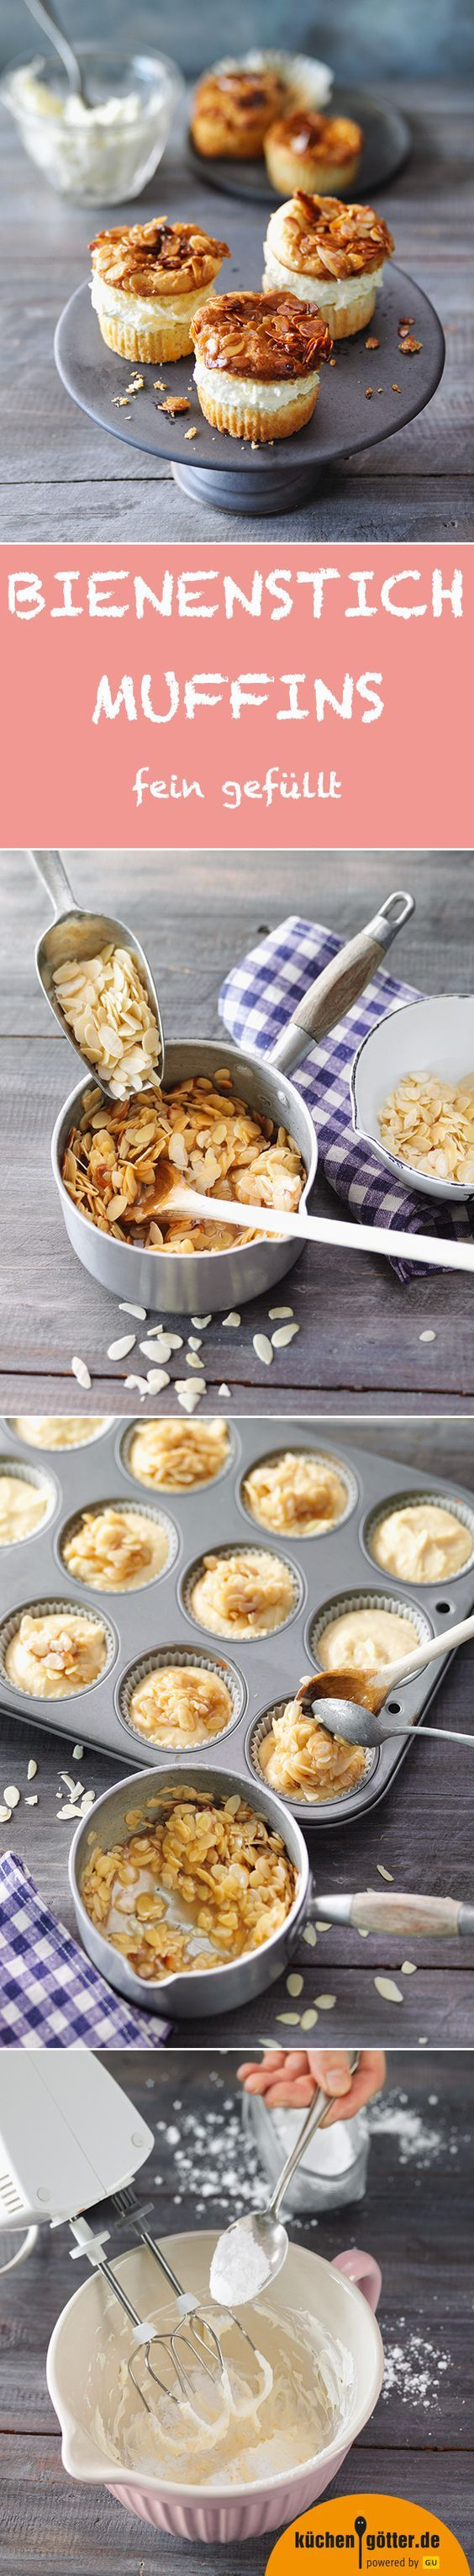 215 best Rezepte images on Pinterest | Oatmeal, Babies and Baby baby